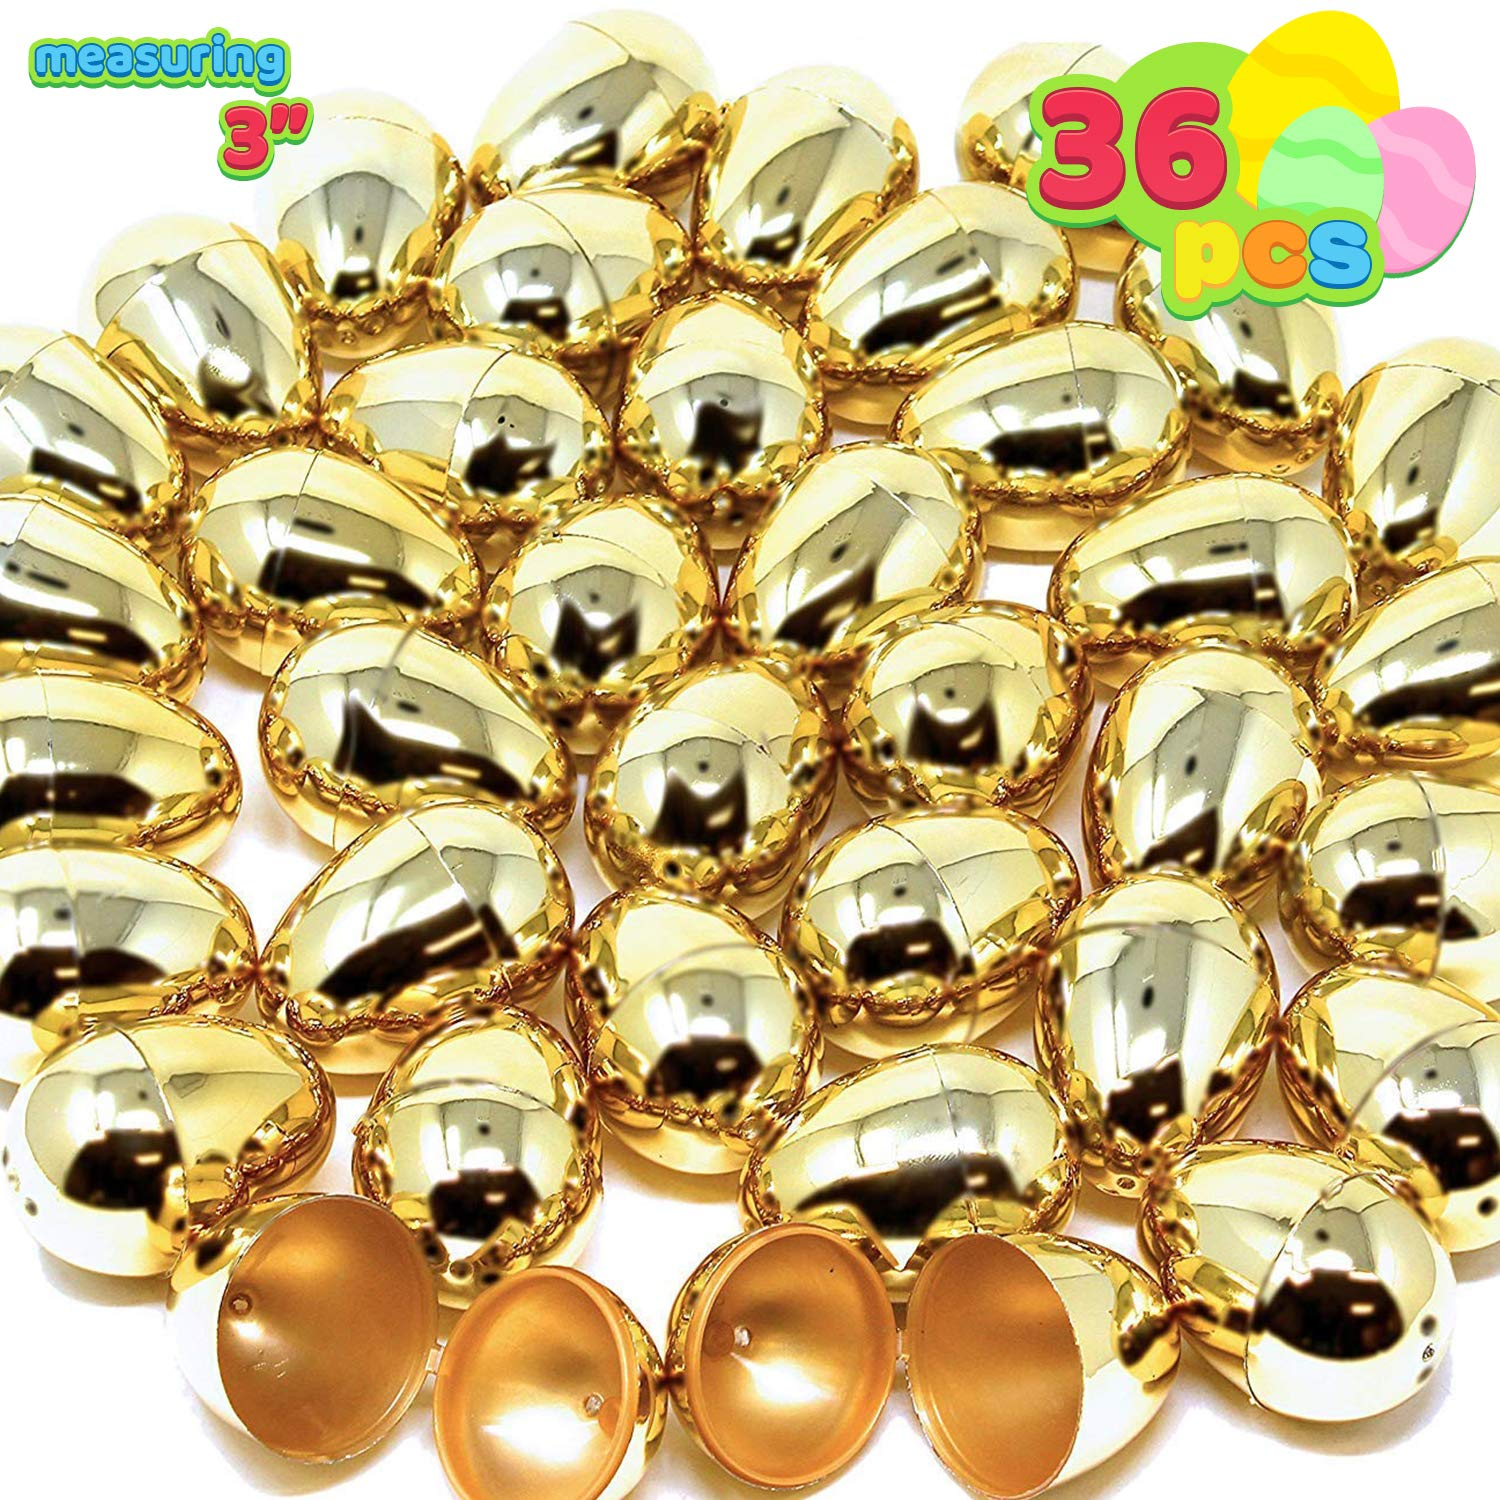 """36 Pieces Shiny large Golden Metallic Easter Eggs 3"""" in Gold Color for Filling Specific Treats, Easter Theme Party Favor, Eggs Hunt, Basket Stuffers Fillers, Classroom Prize Supplies"""